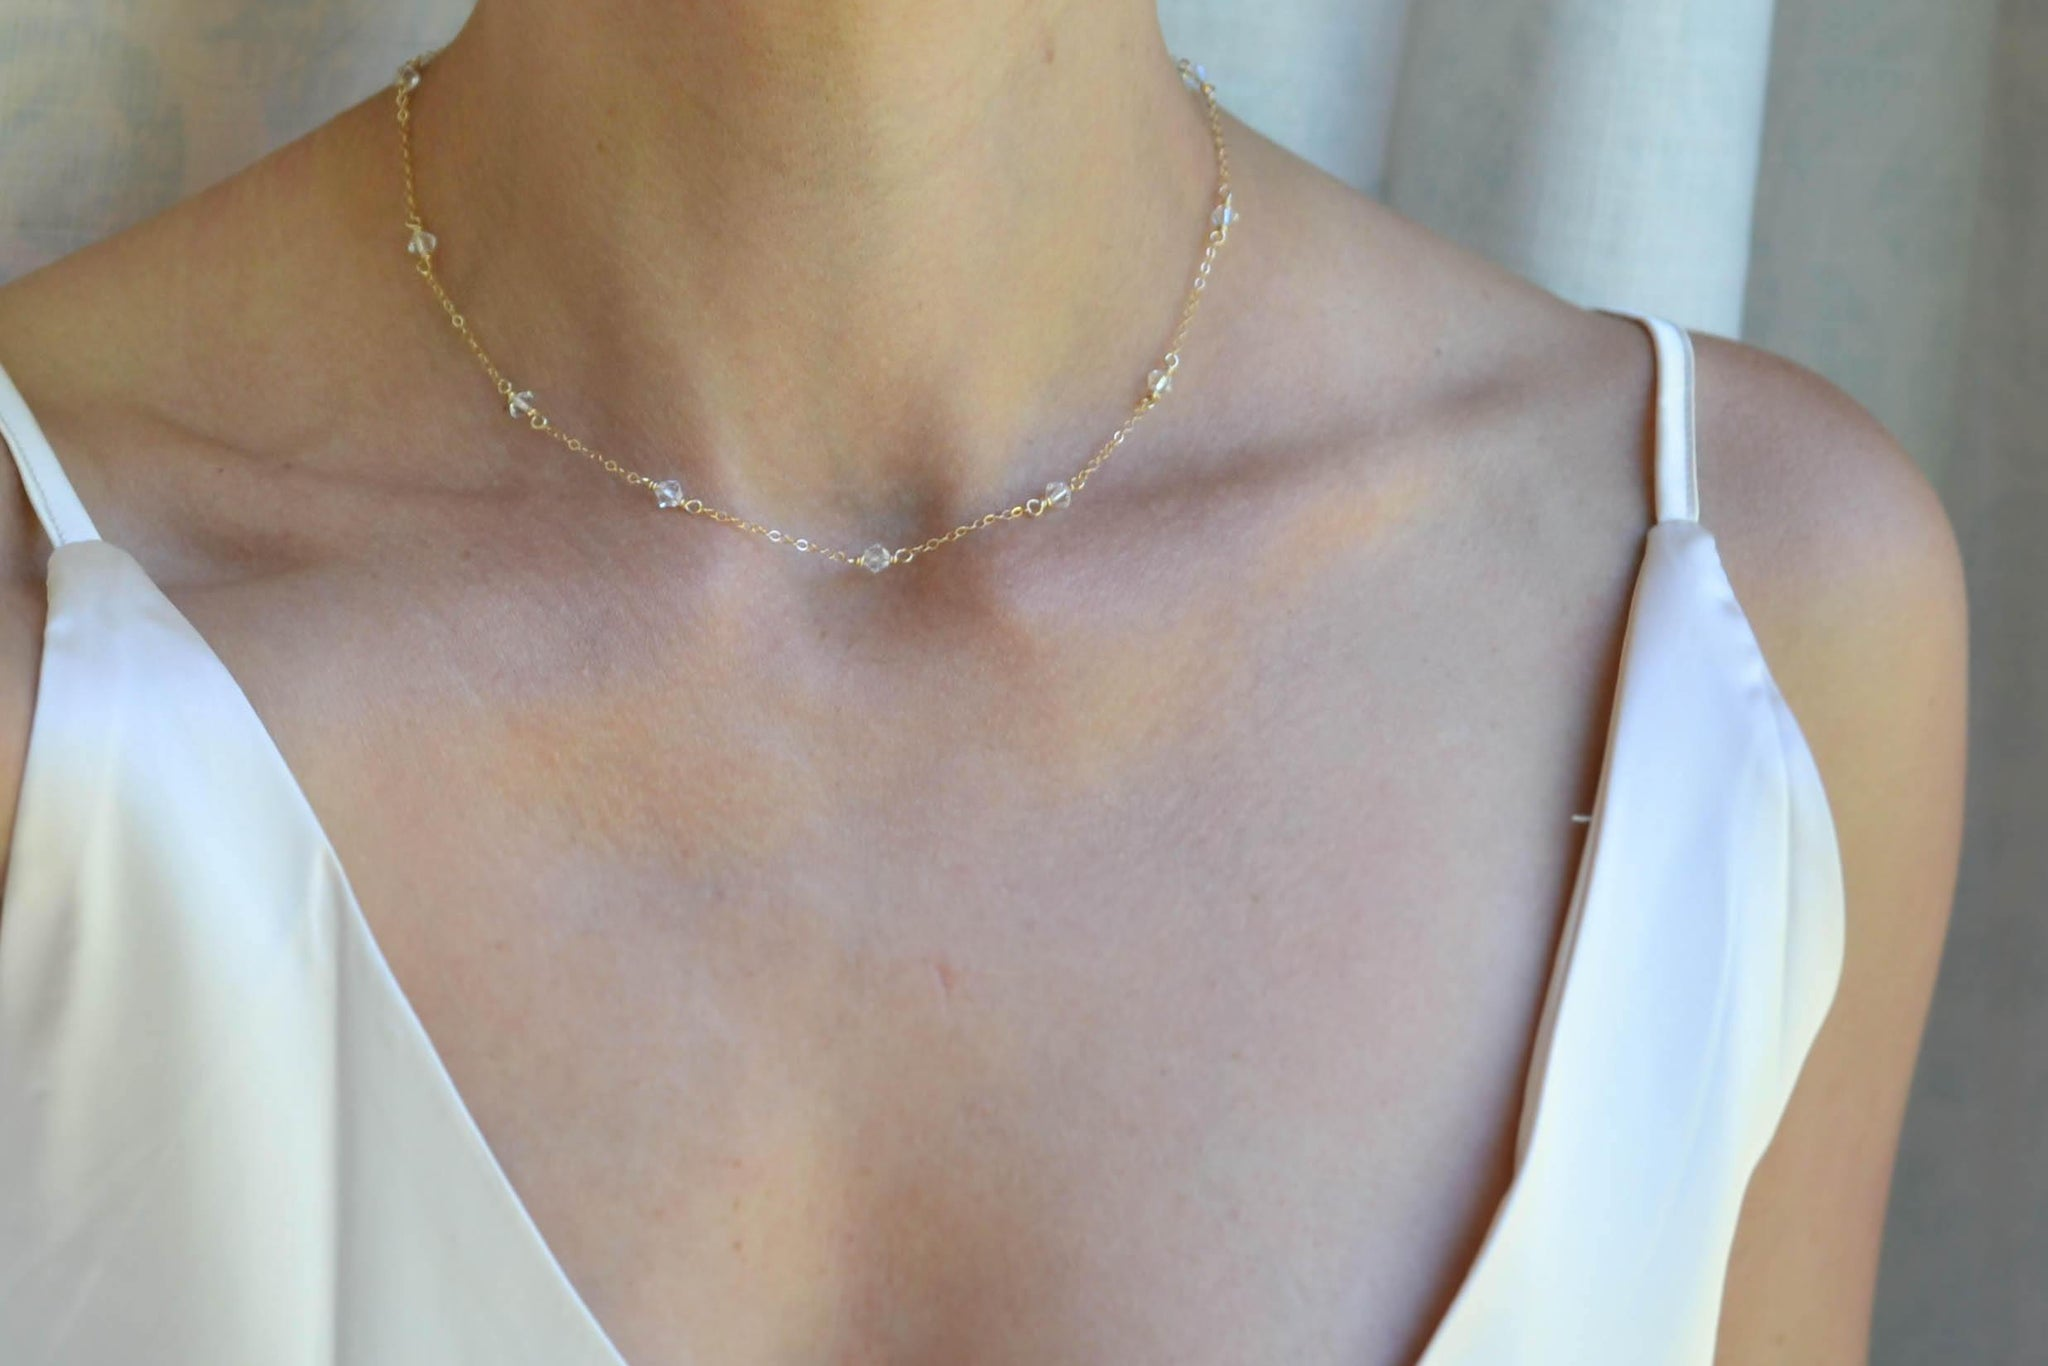 Crystal Station Necklace, Tin Cup Necklace - 14K Gold Filled-Sela+Sage